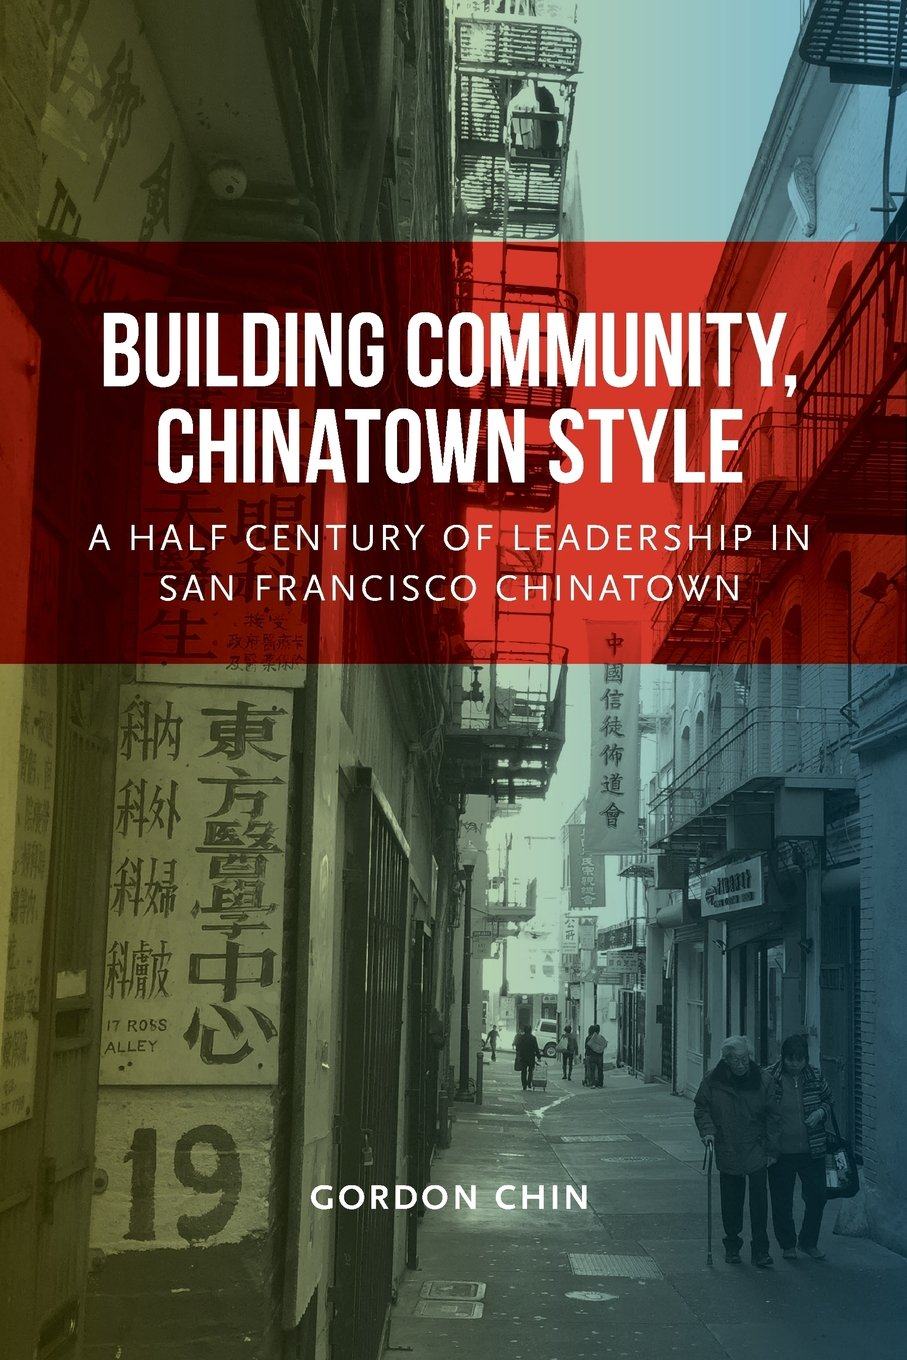 Building Community, Chinatown Style: A Half Century of Leadership in San Francisco Chinatown